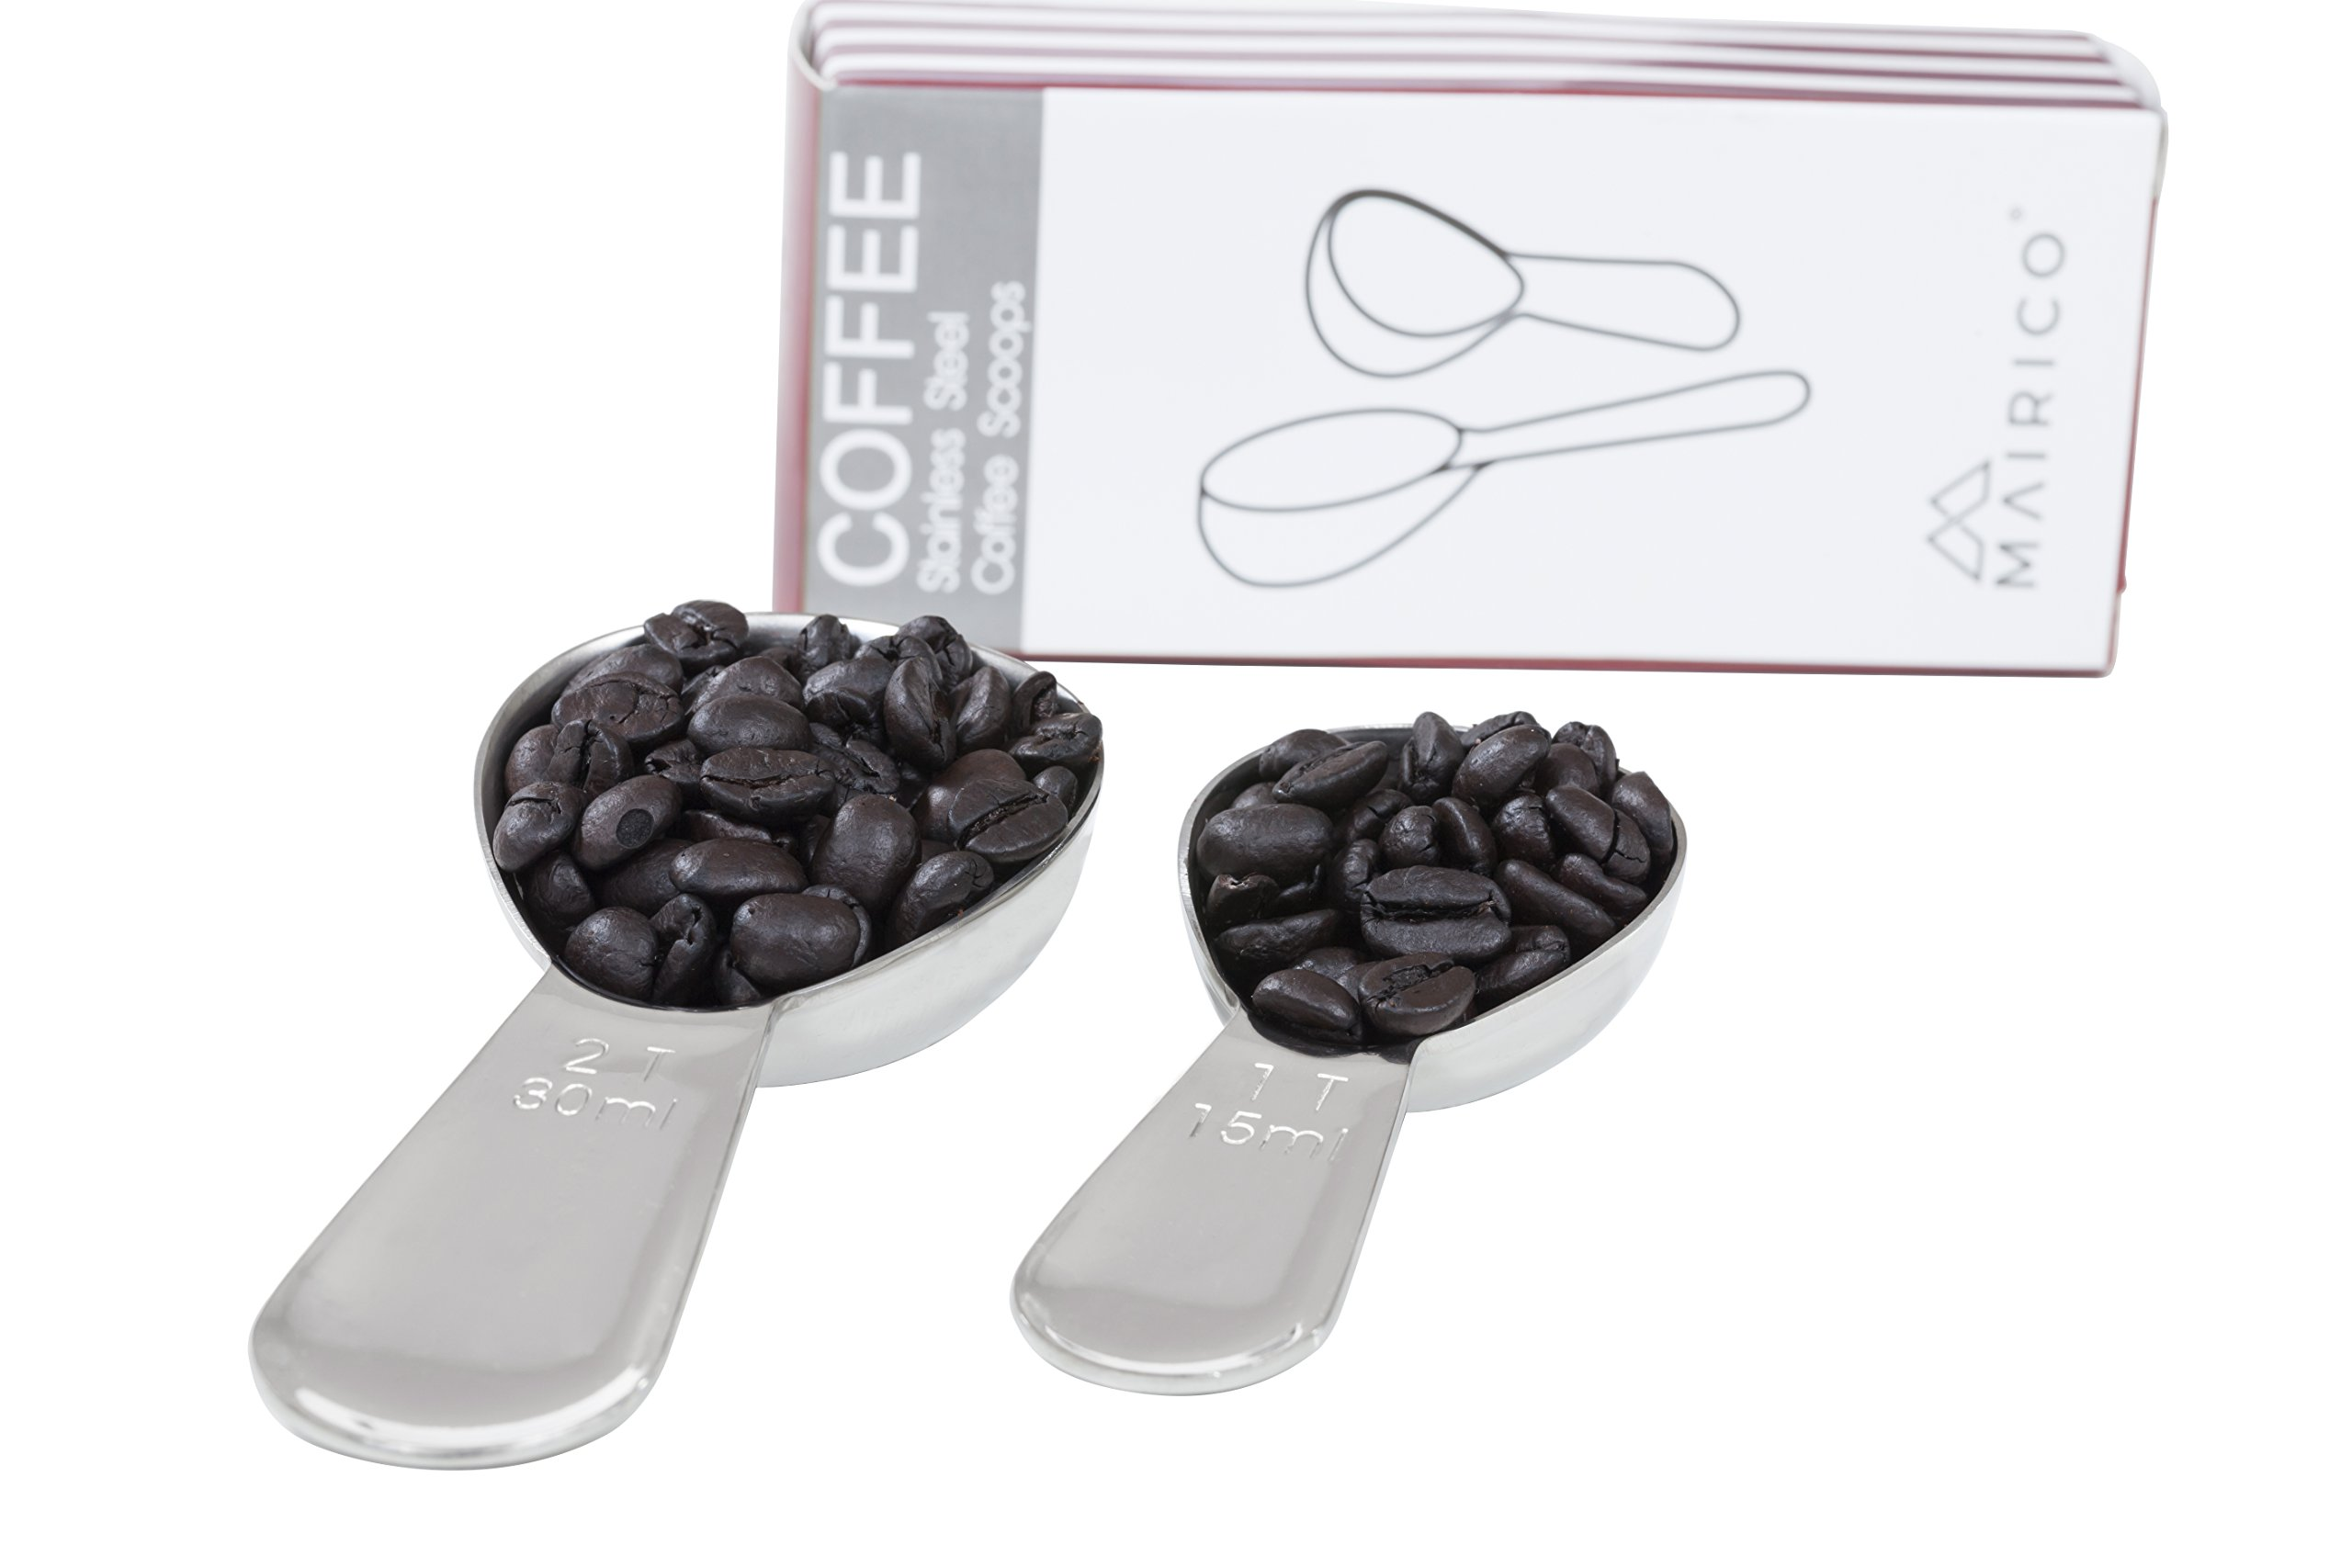 MAIRICO Premium Stainless Steel Measuring Coffee Scoops - 2 Tablespoons and 1 Tablespoon Coffee Scoops Set